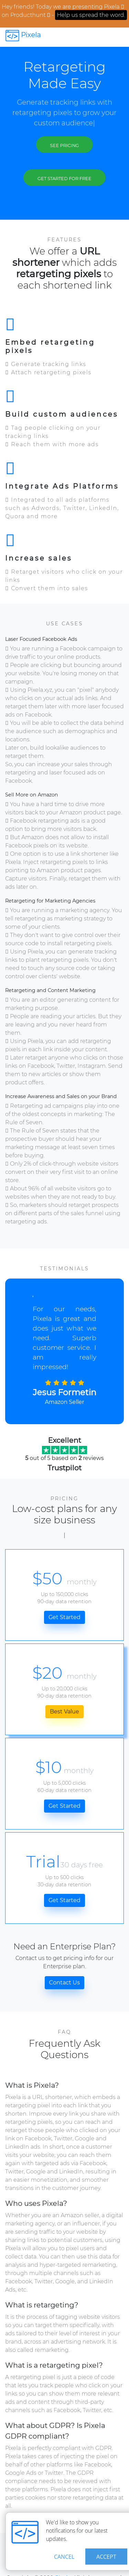 Example of Design for Business & Industrial, Business Services, Mobile Landing Page by pixela.xyz   Mobile Landing Page Design